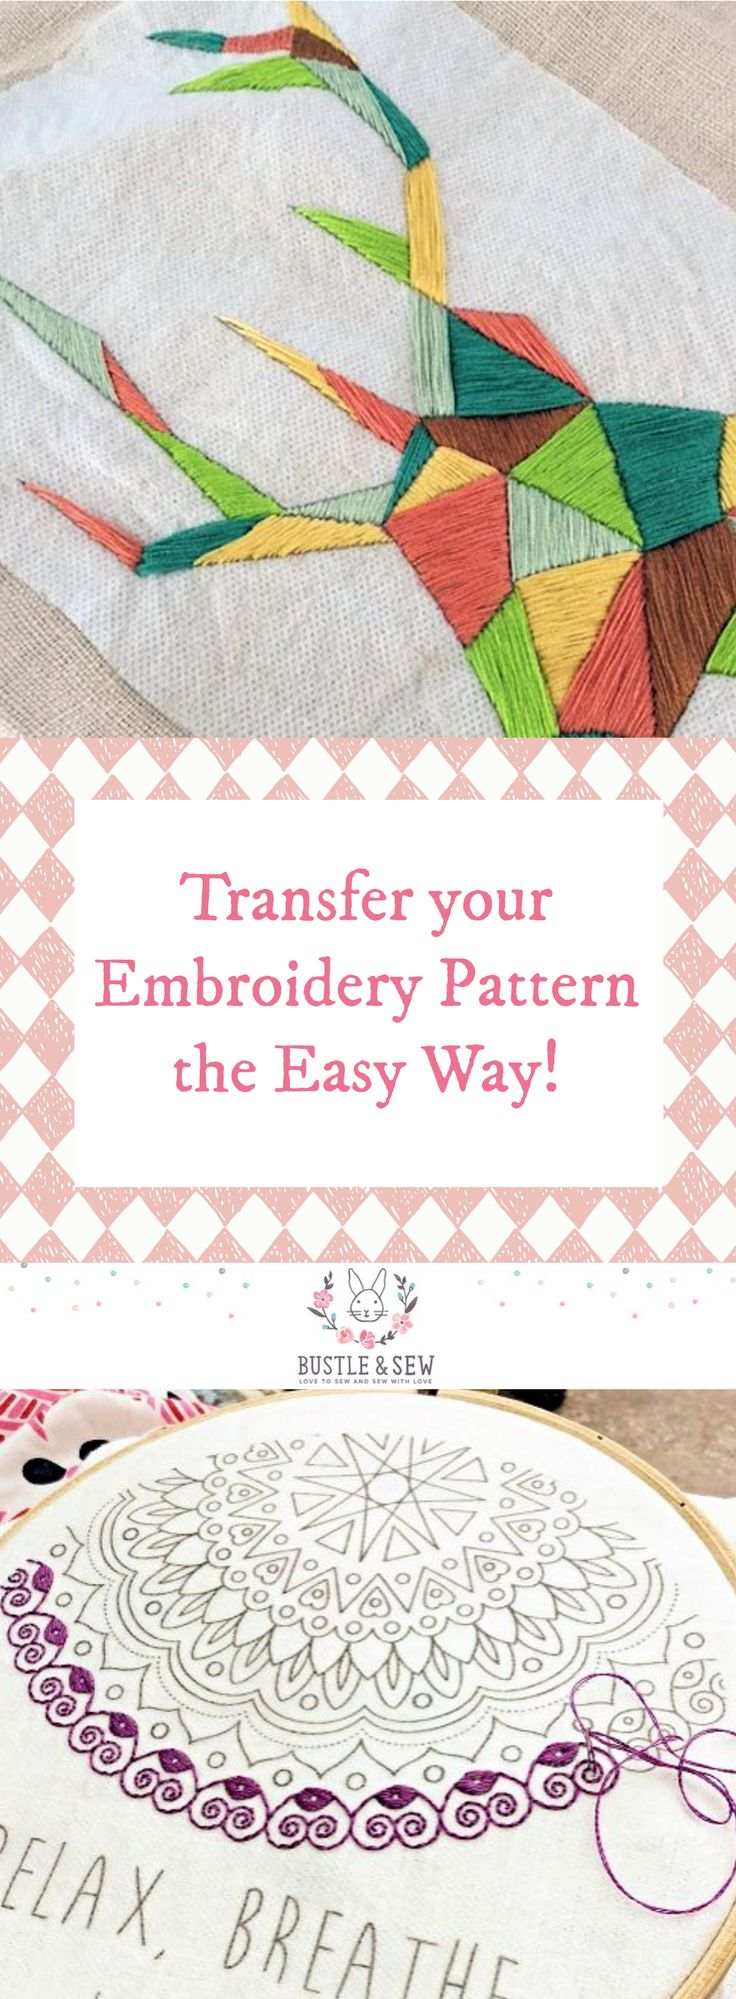 Transfer your Embroidery Pattern the Easy Way - tutorial from Bustle & Sew